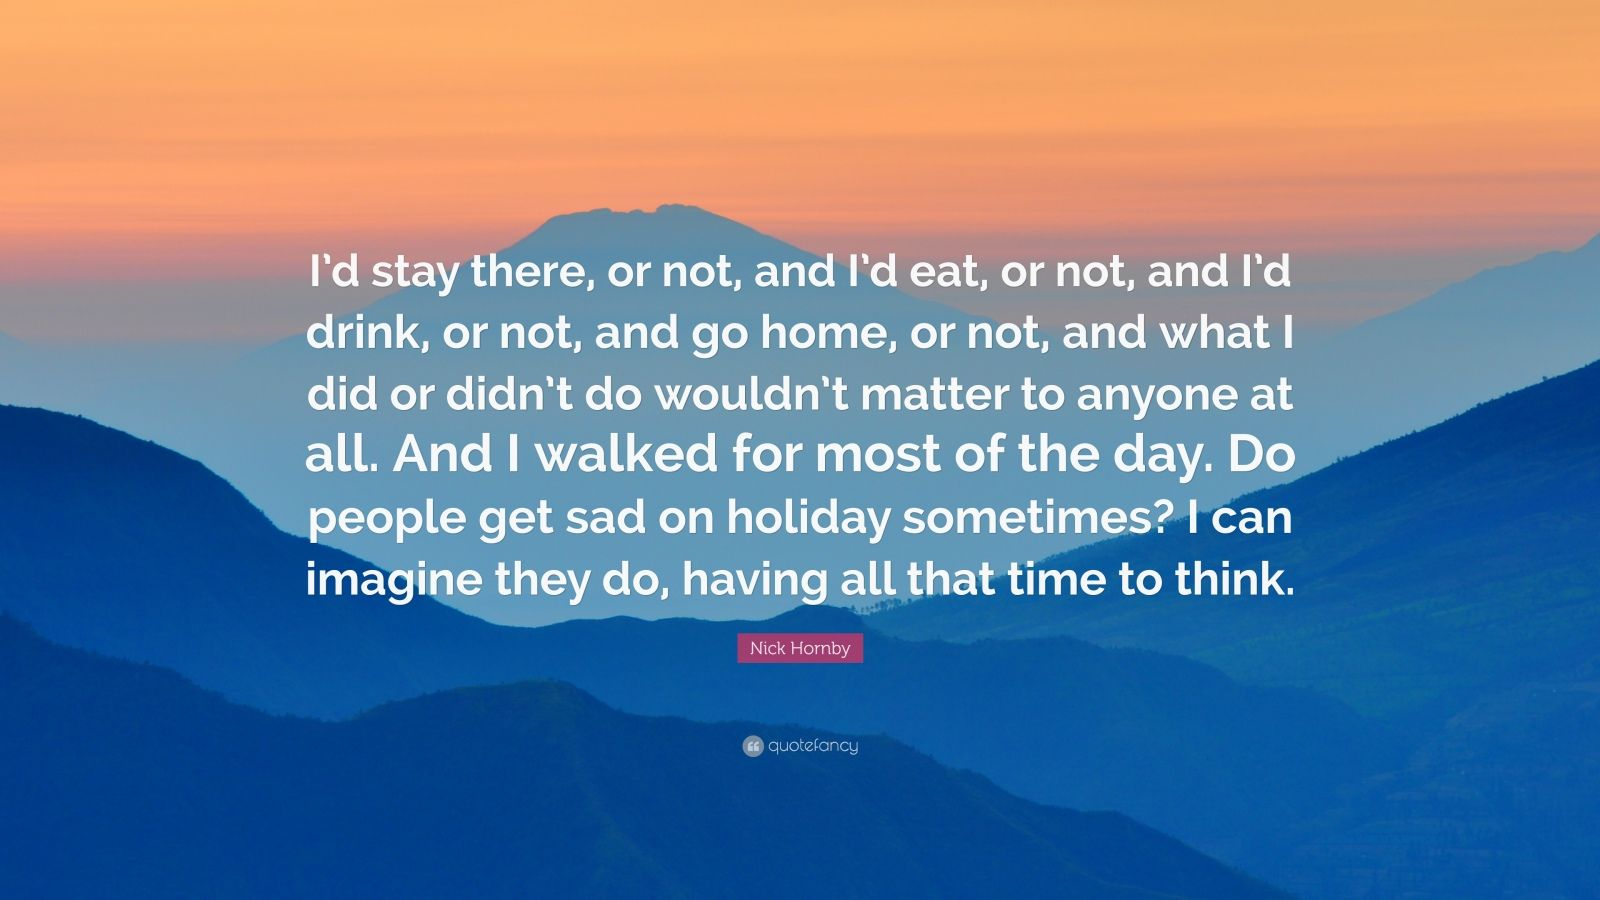 """Nick Hornby Quote: """"I'd stay there, or not, and I'd eat, or not, and I'd drink, or not, and go home, or not, and what I did or didn't do wouldn't matter to anyone at all. And I walked for most of the day. Do people get sad on holiday sometimes? I can imagine they do, having all that time to think."""""""